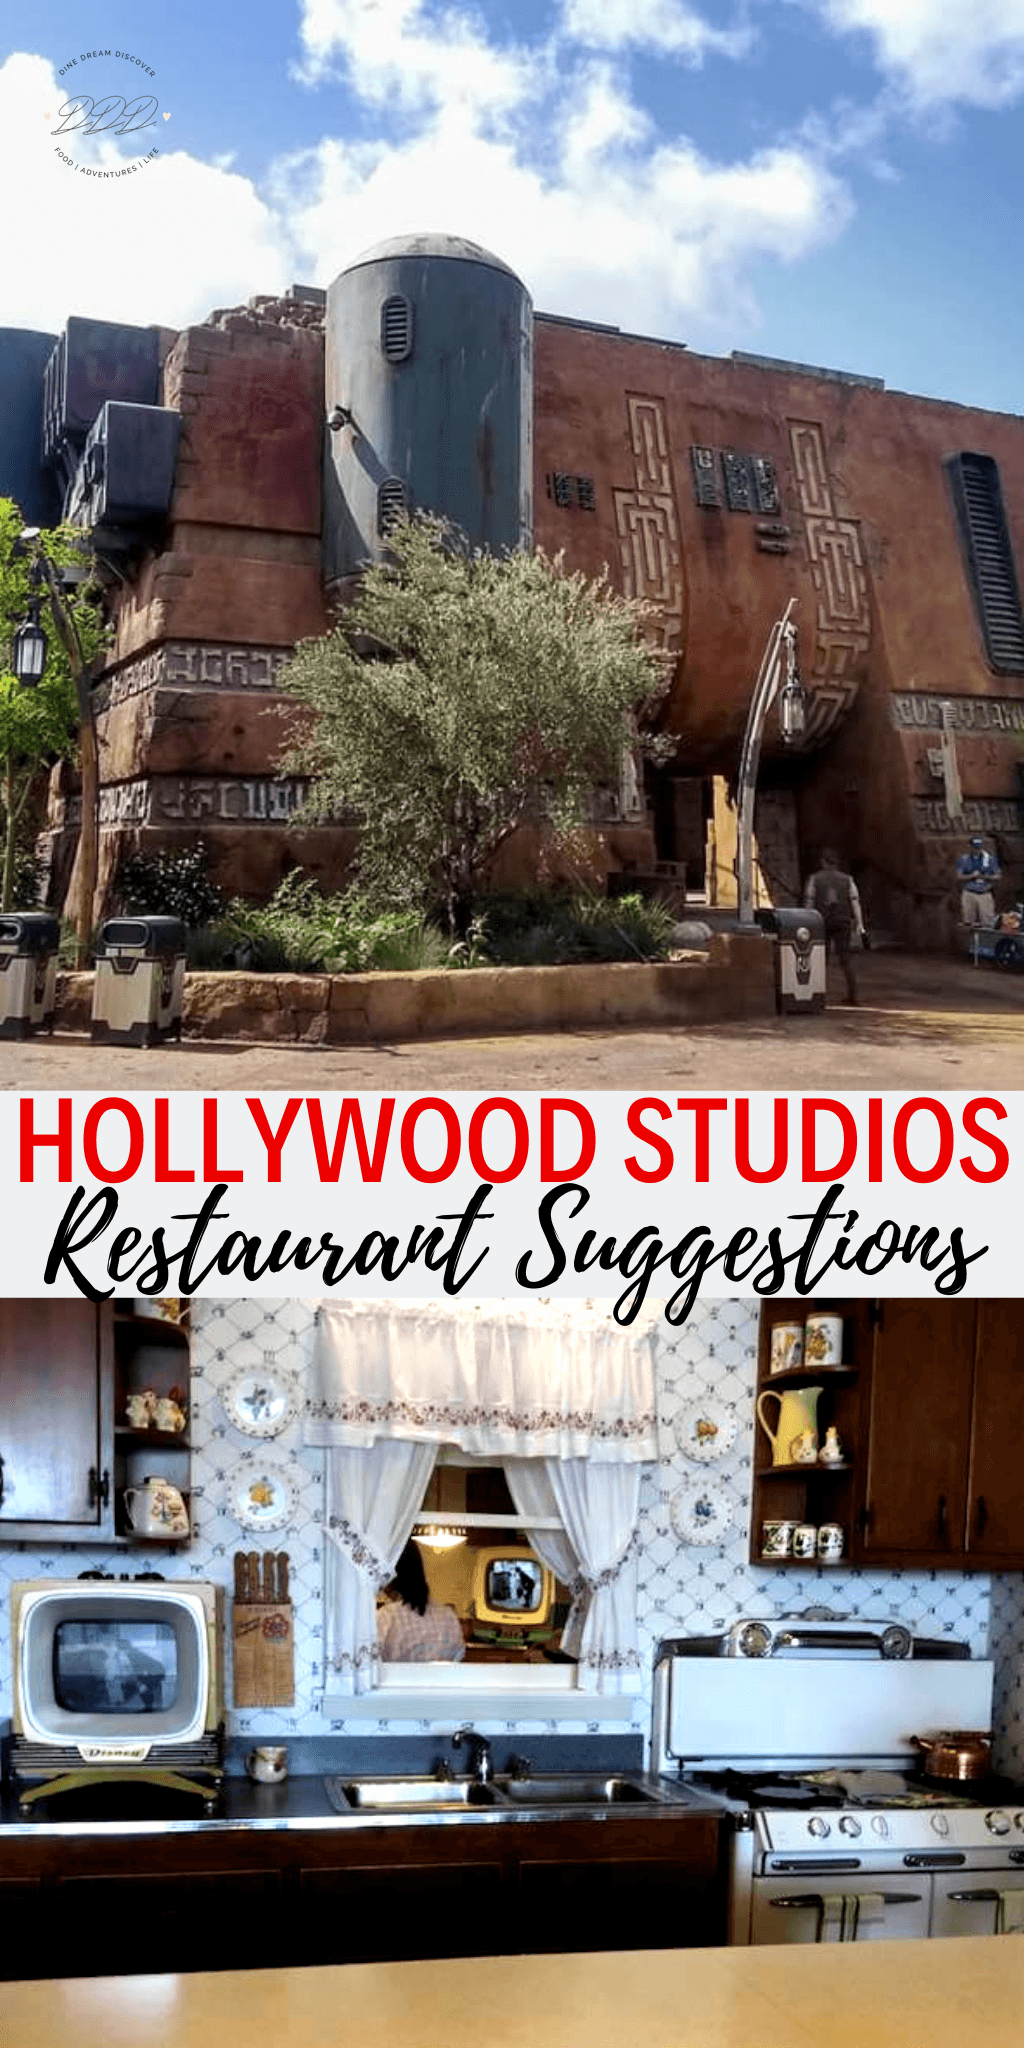 Since the park is likely to be at full capacity, you should also focus on securing reservations for these Hollywood Studios restaurants where possible.